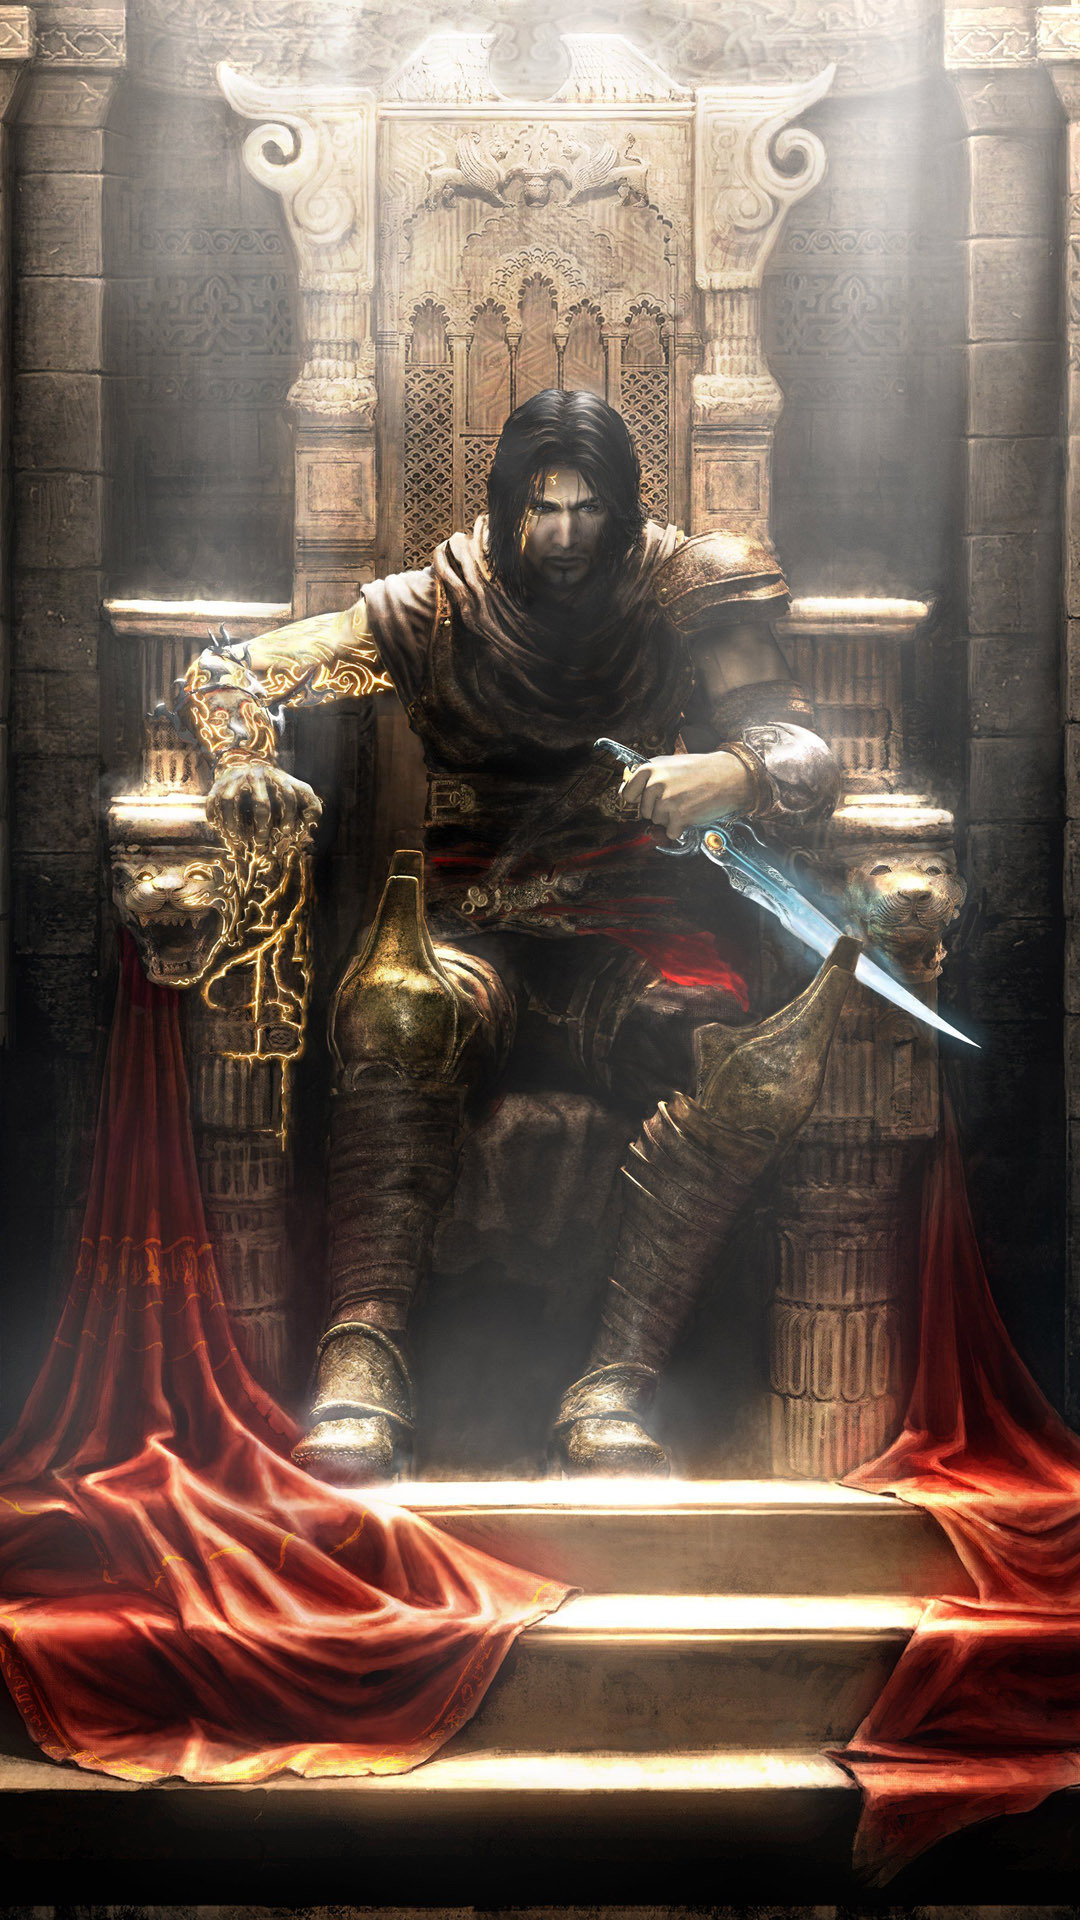 Prince of persia the two thrones wallpapers wallpaper cave.